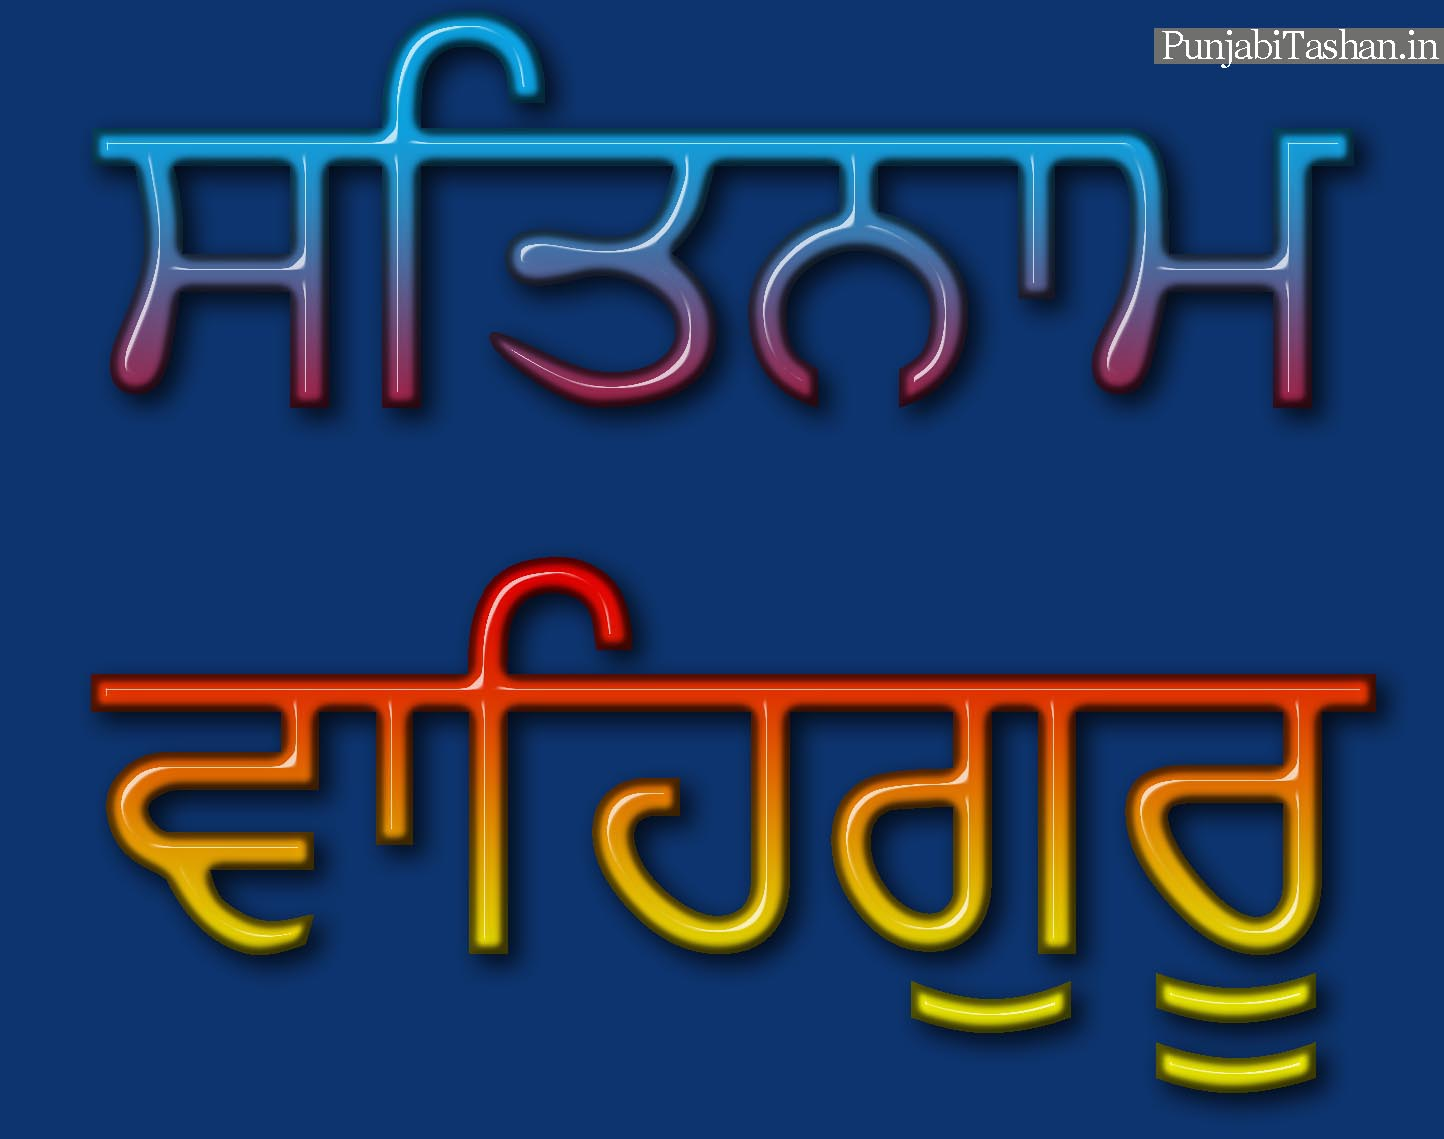 Free Download Wallpapers Satnam Waheguru Sikh Ments Khanda Sikhism ...